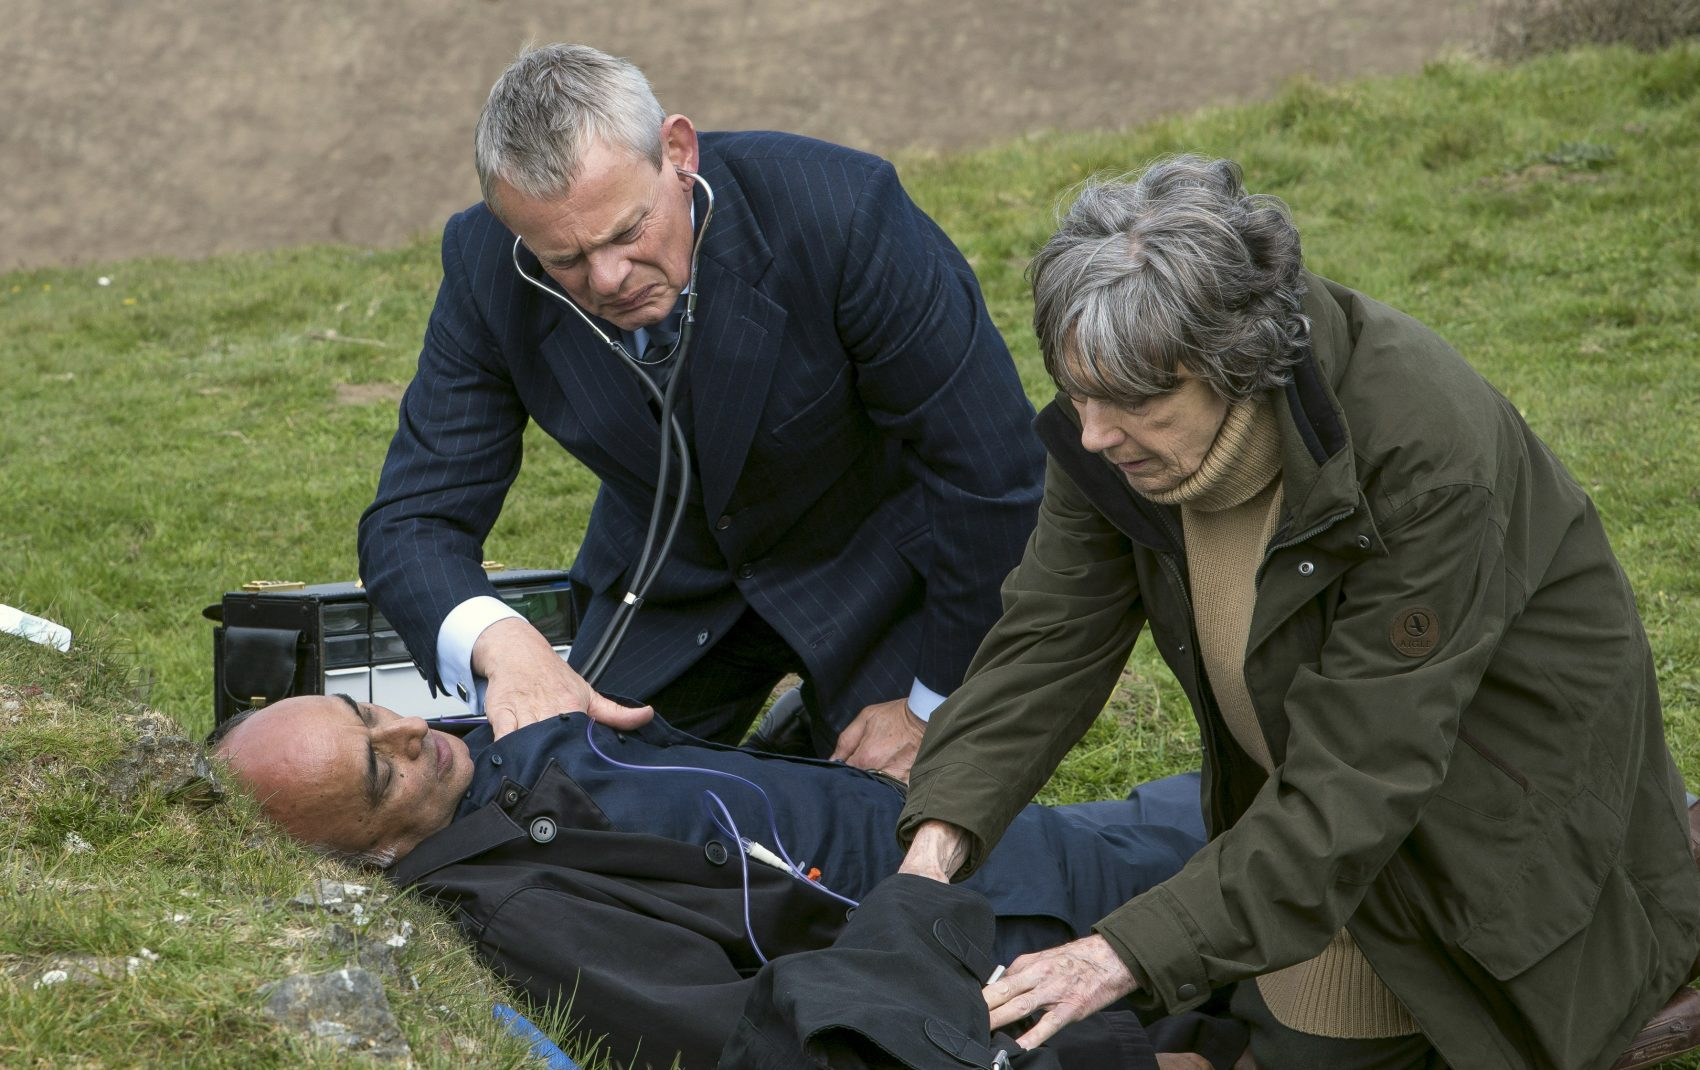 """Martin Clunes as """"Doc Martin"""" tends to Art Malik as a visitor to Portwenn. Eileen Atkins plays his aunt. (Courtesy of Acorn TV)"""